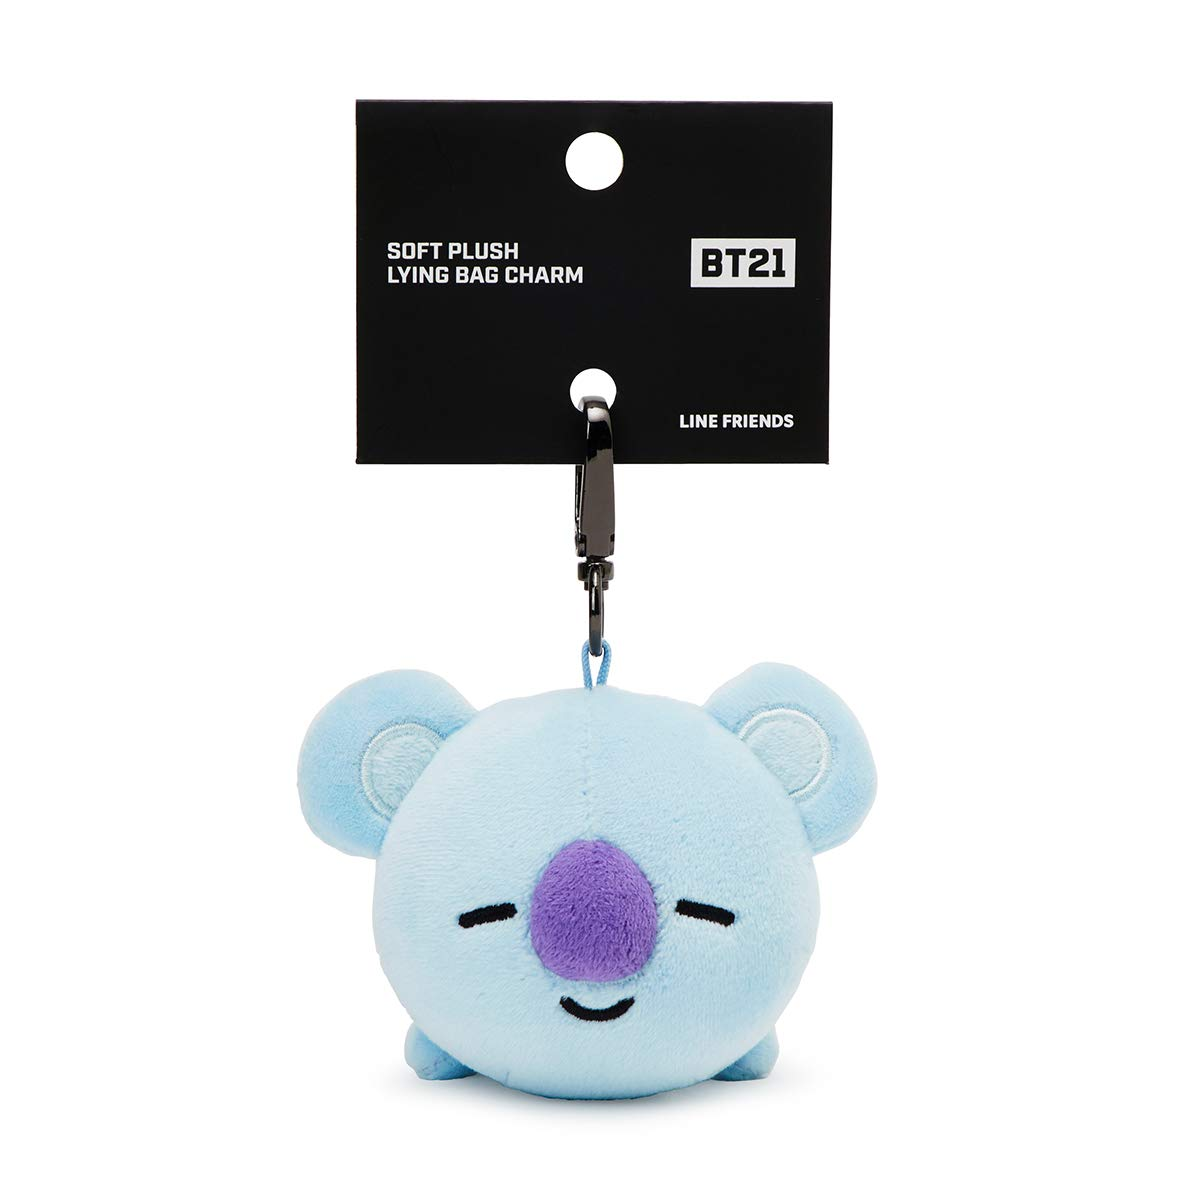 BT21 Official Merchandise by Line Friends - Character Plush Keychain Handbag Accessory for Women, Parent